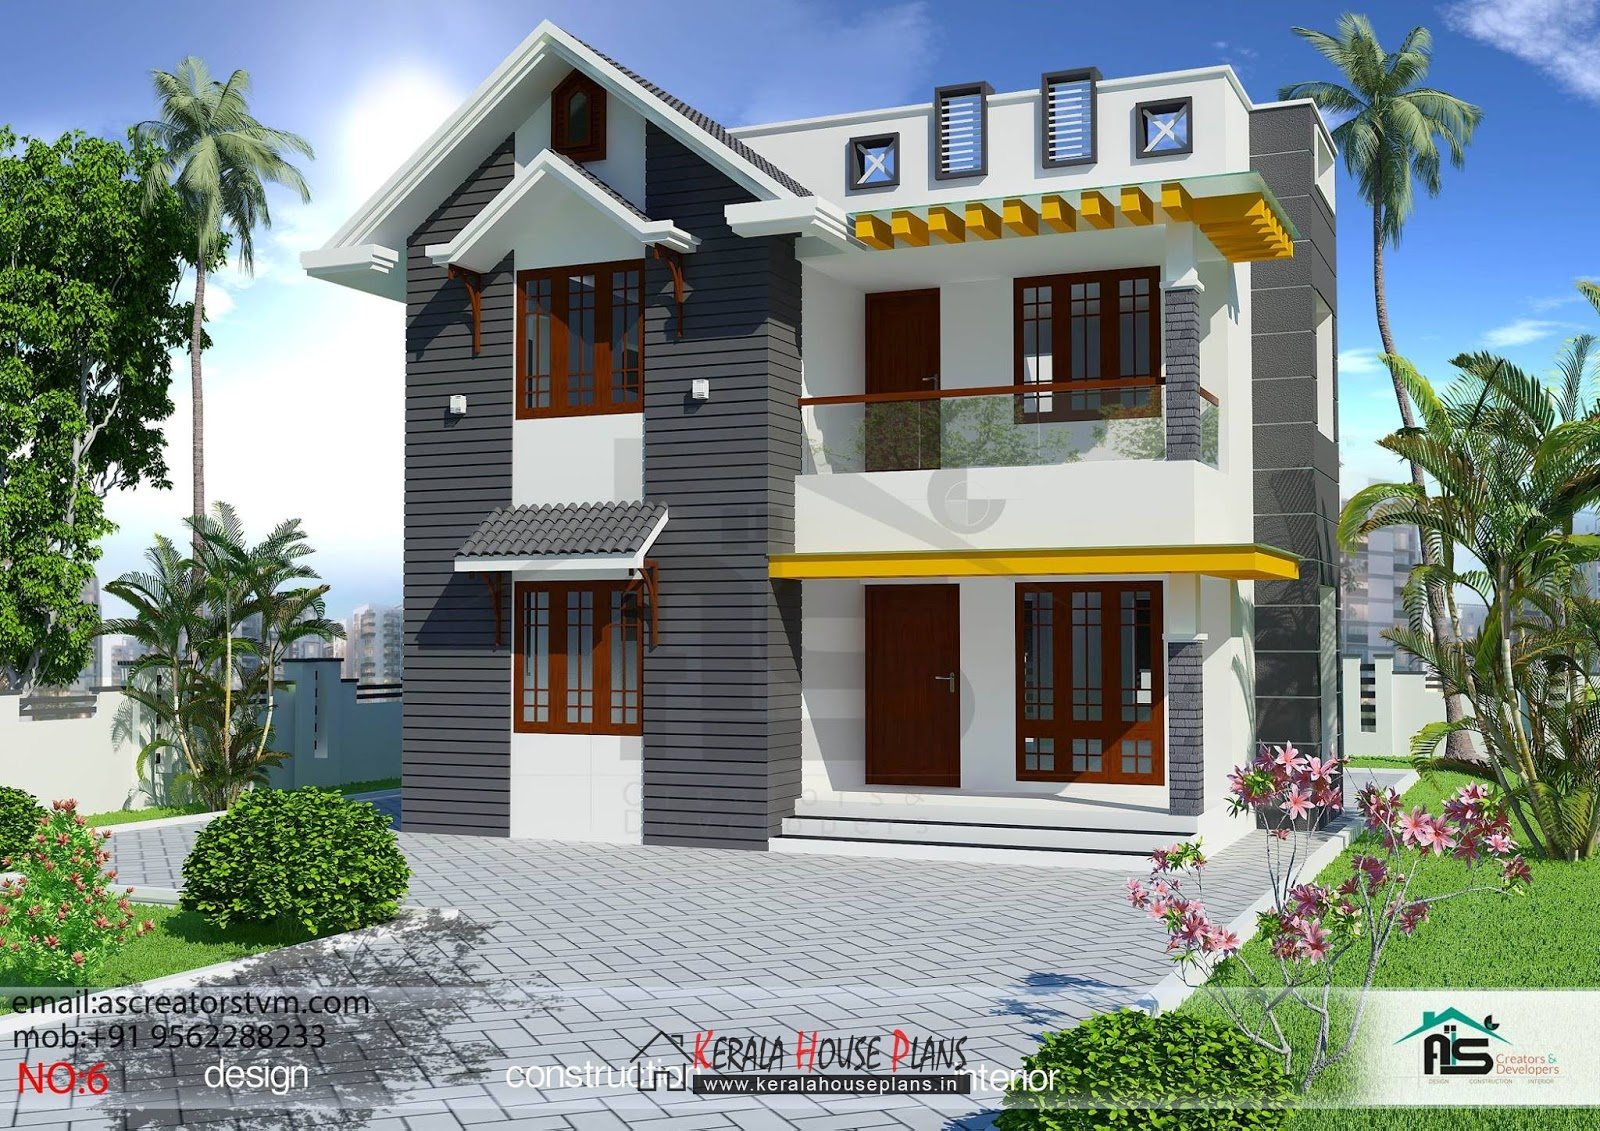 3 bedroom house plans in kerala double floor kerala for 3 bedroom house plan kerala